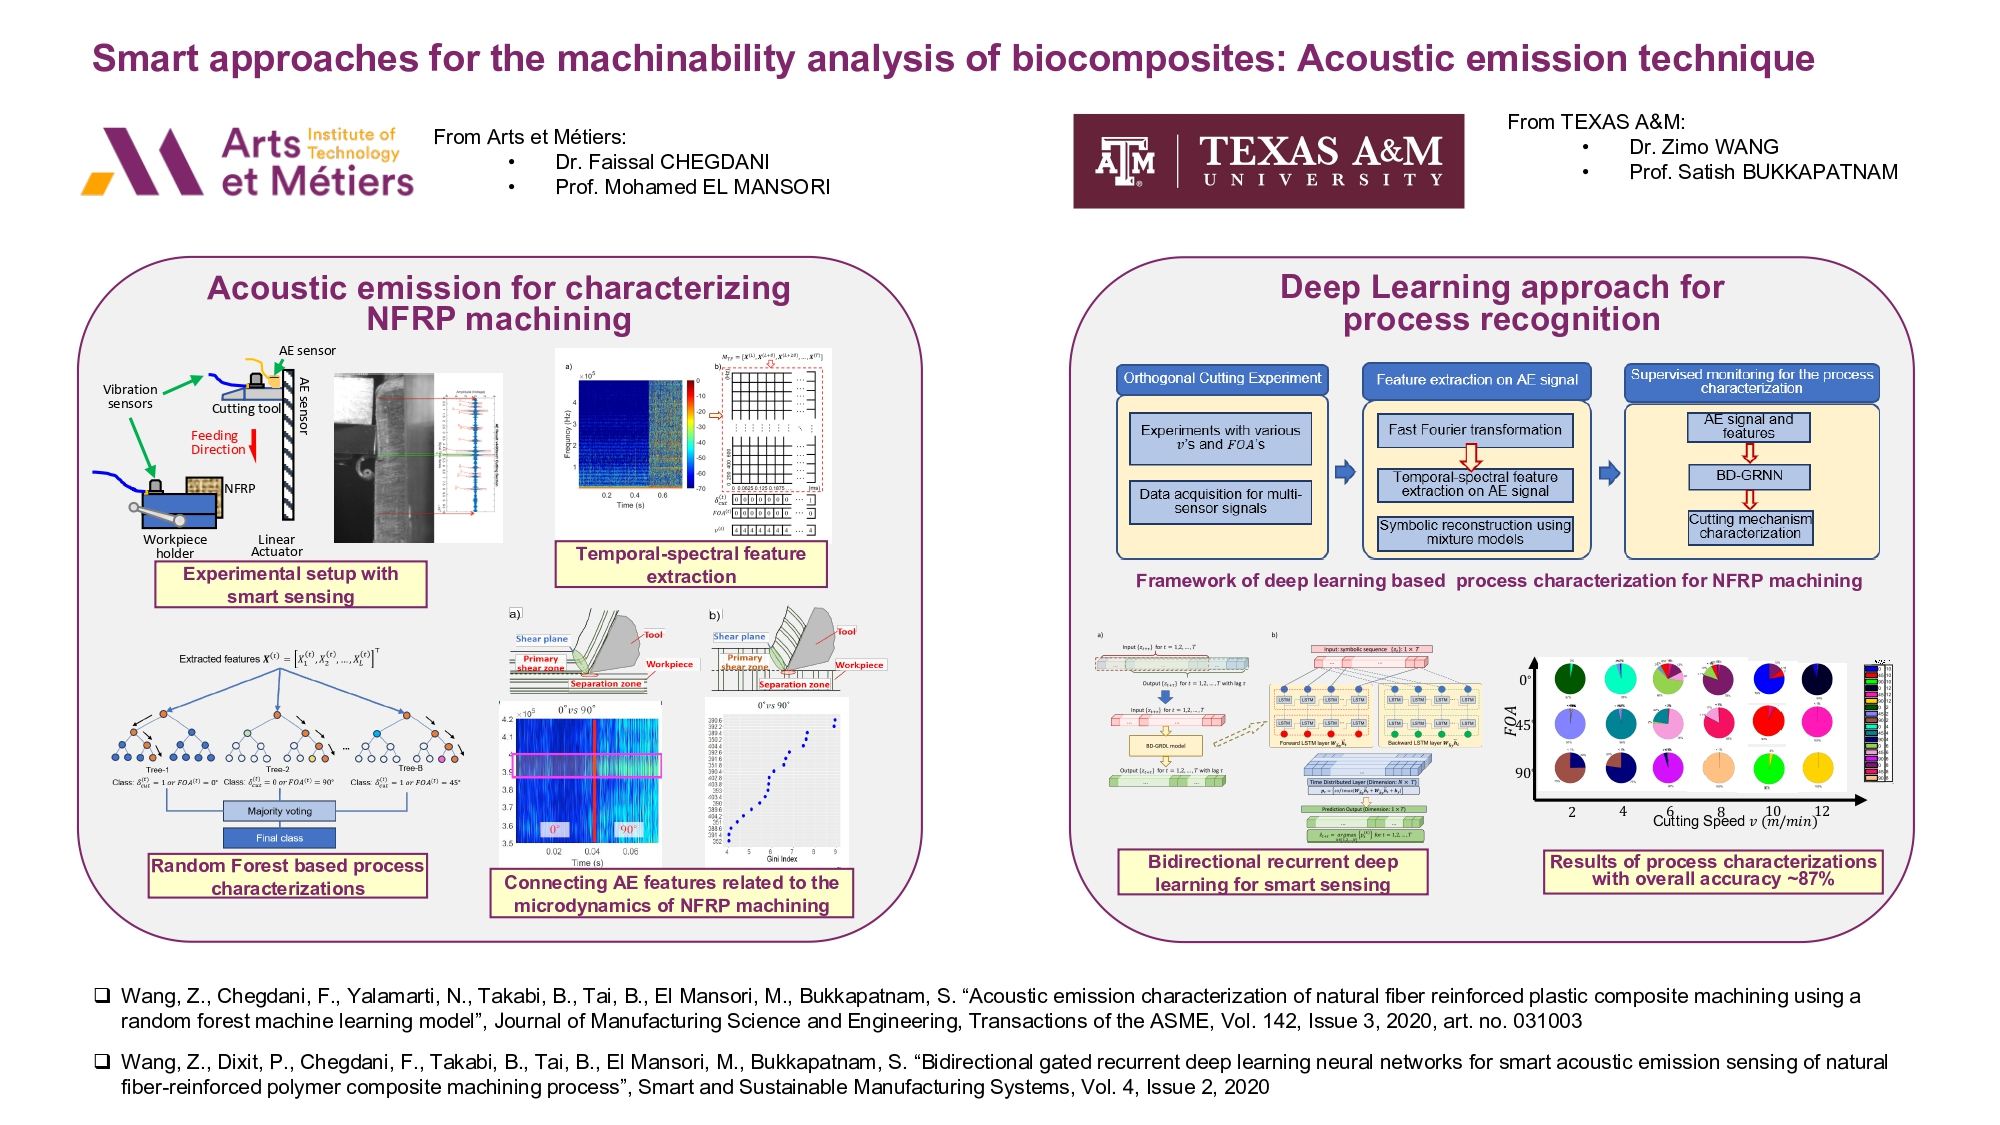 Smart approaches for the machinability analysis of biocomposites: Acoustic emission technique | Events AM2